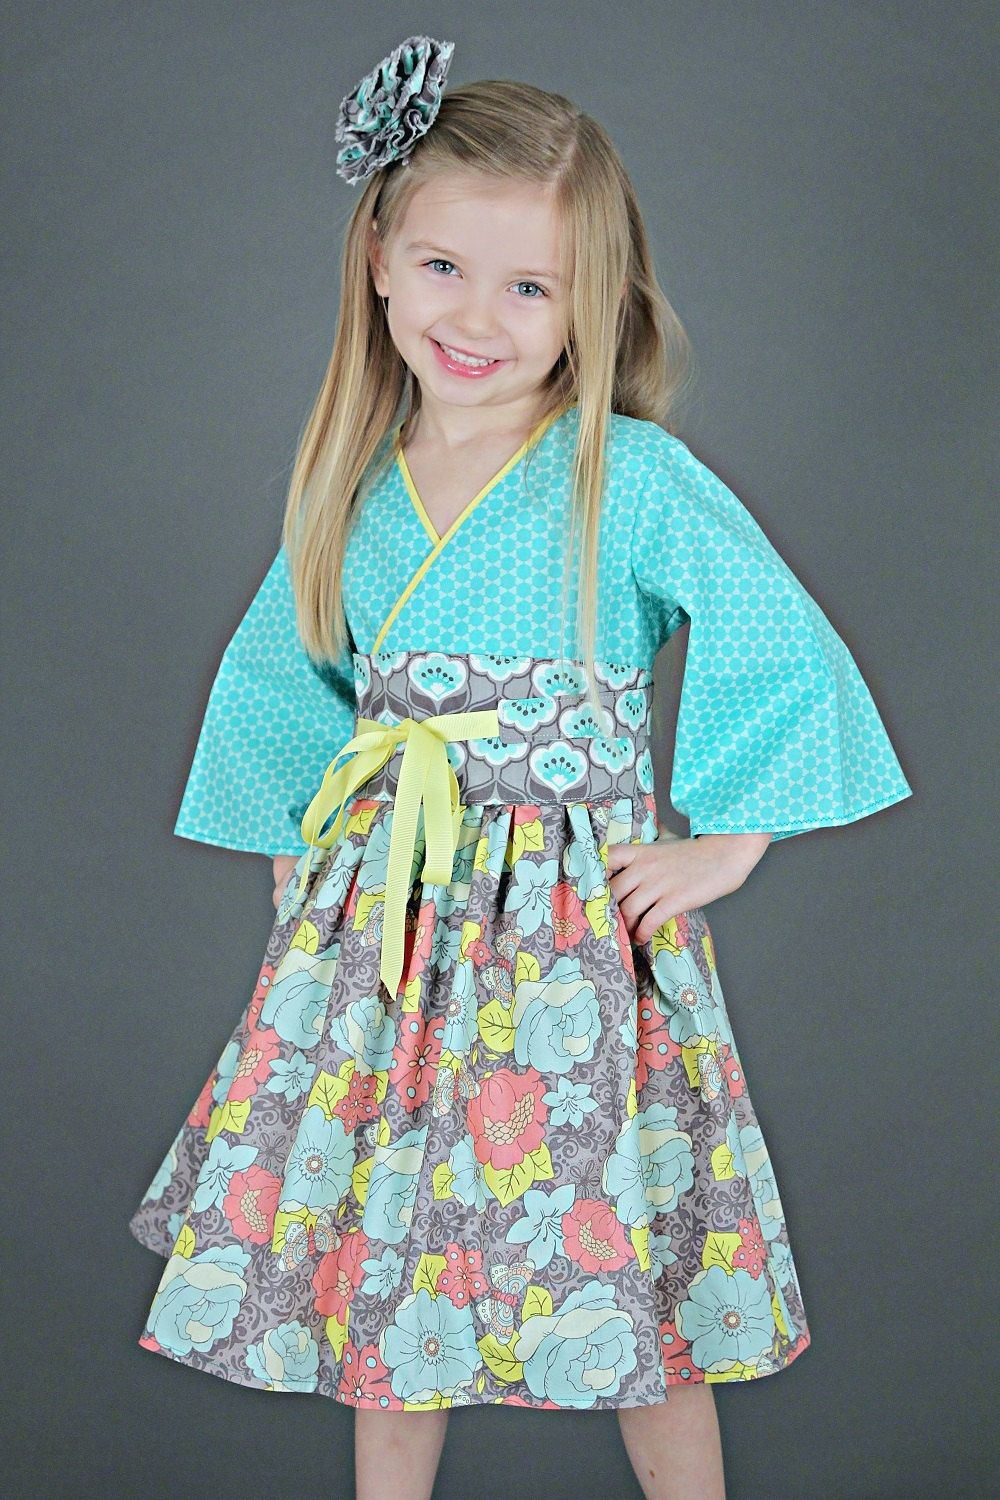 c145375bb New to PinkMouseKids on Etsy: Boutique Dress - Girls Birthday Dress - Aqua  Dress - Girls Kimono - Little Girl Dresses - Toddler Dress - sizes 2T to 7  years ...